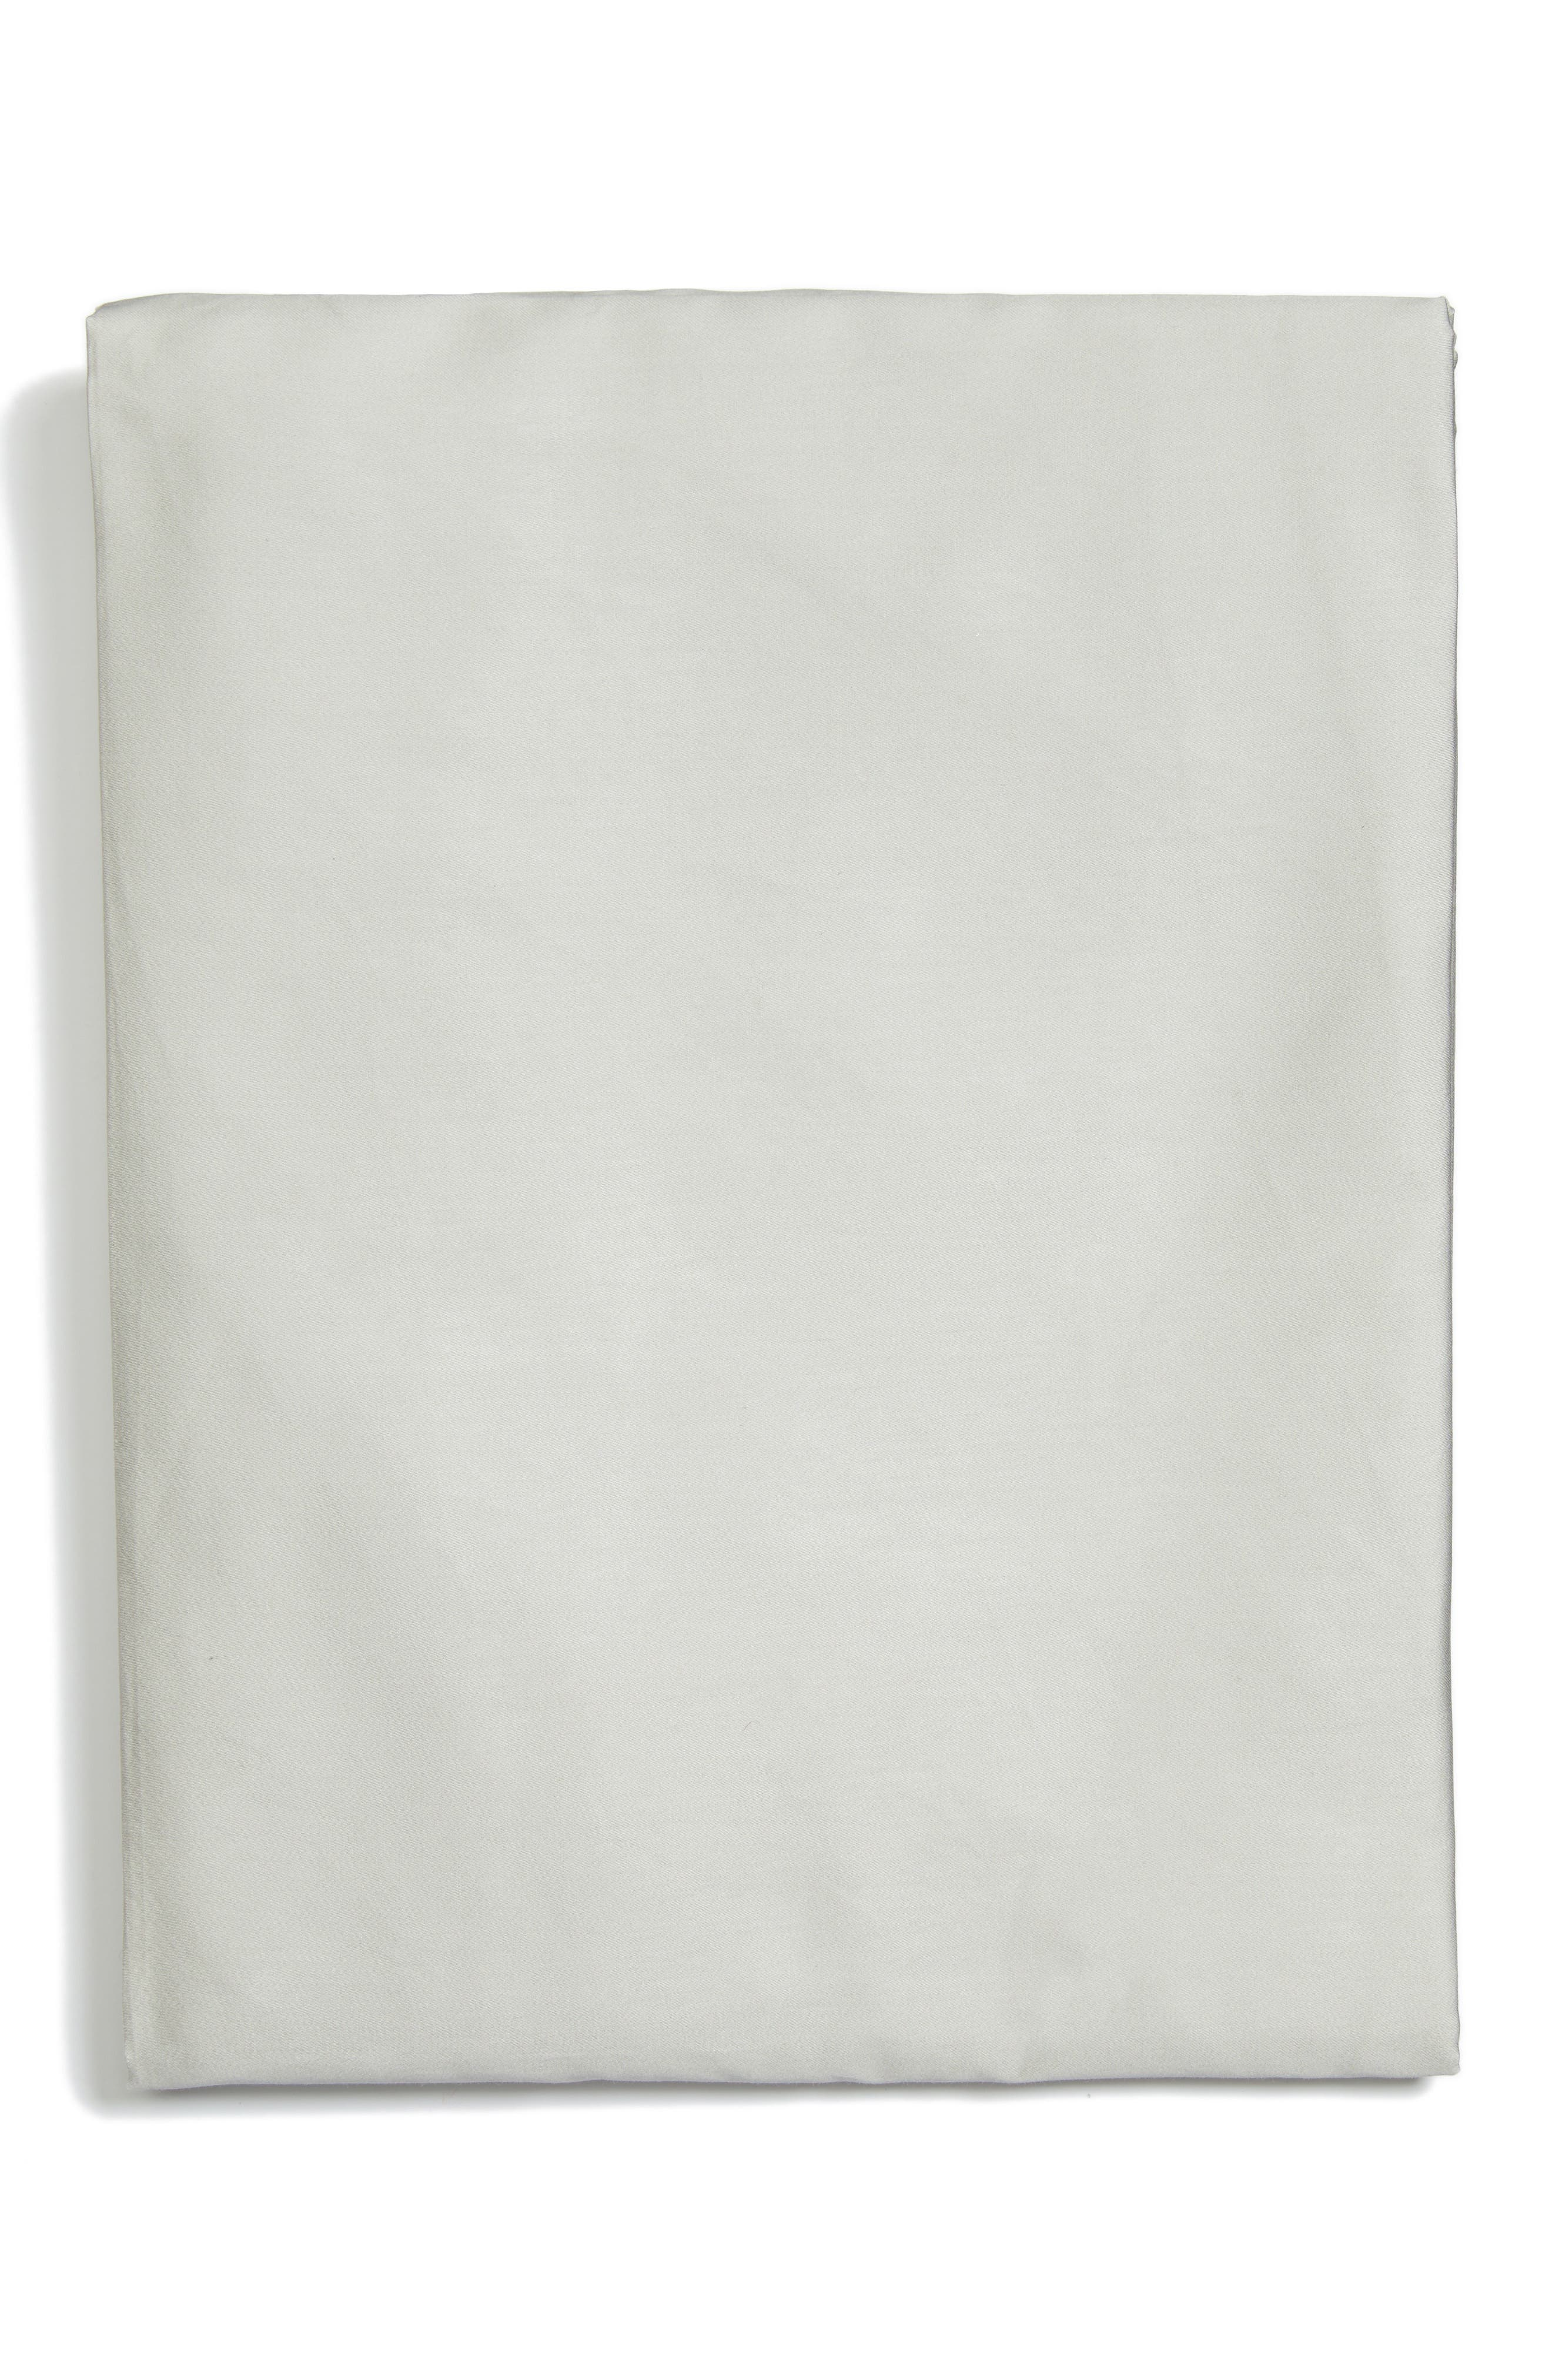 Main Image - SFERRA Fiona 300 Thread Count Fitted Sheet